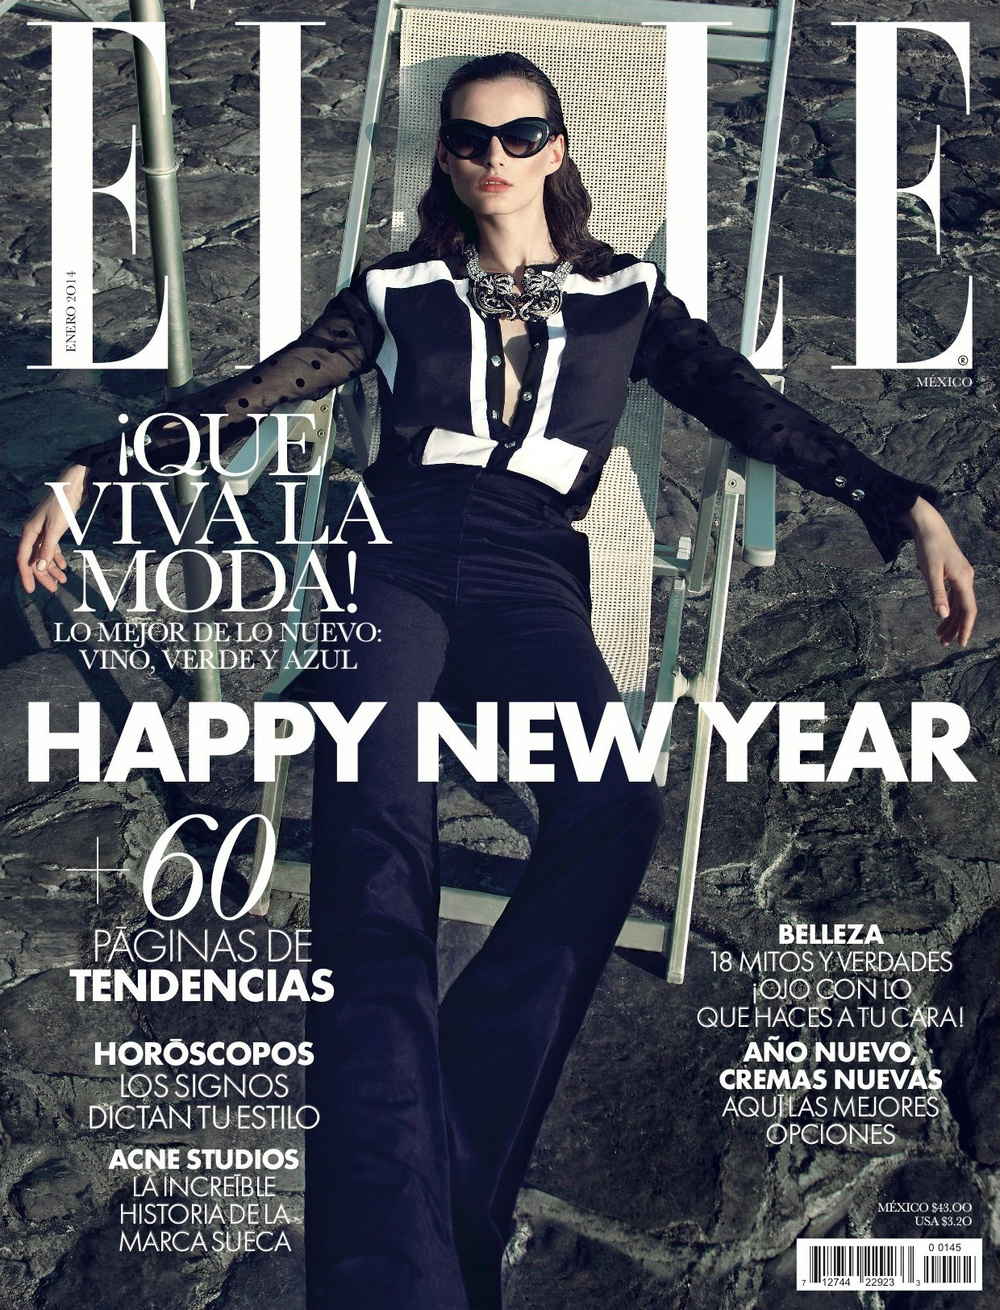 elle-mexico-2014-january-01.jpg